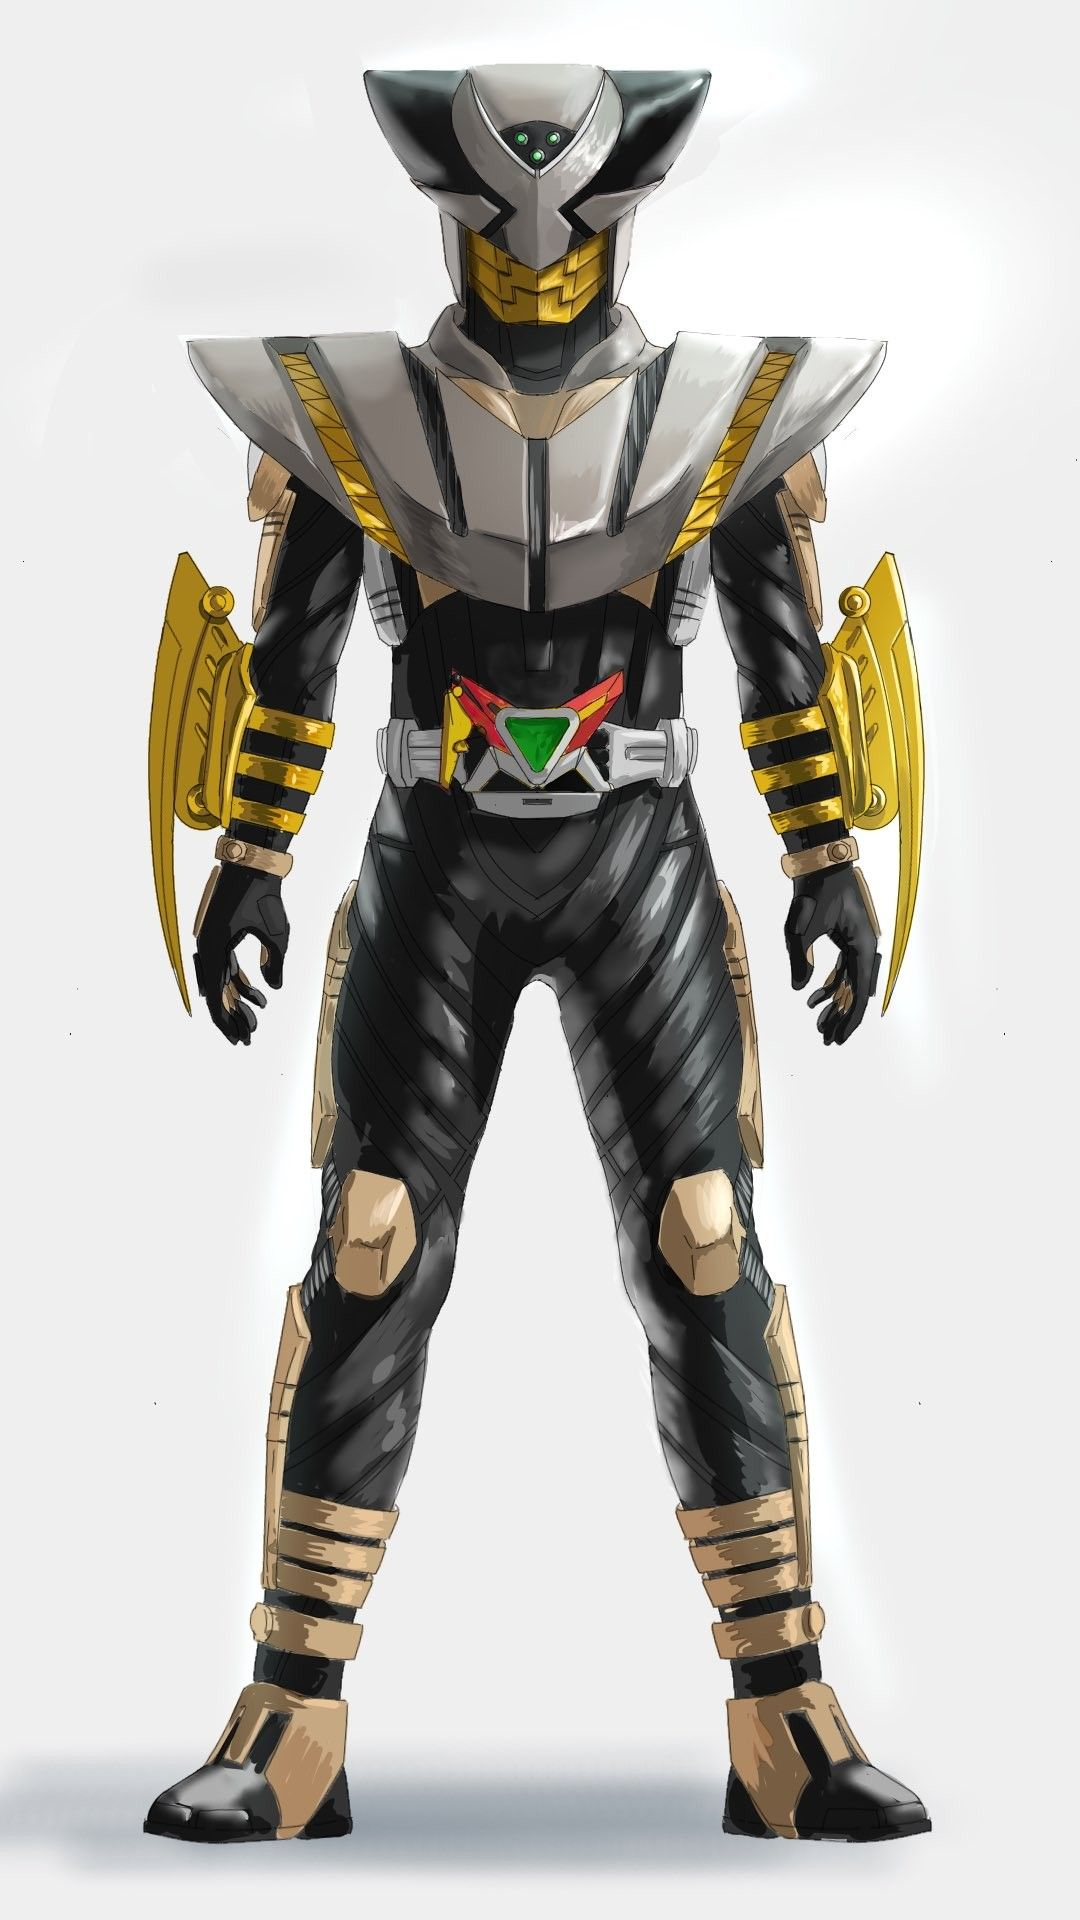 someone tell me where these are from キャラクターデザイン ライダー 仮面ライダーカブト